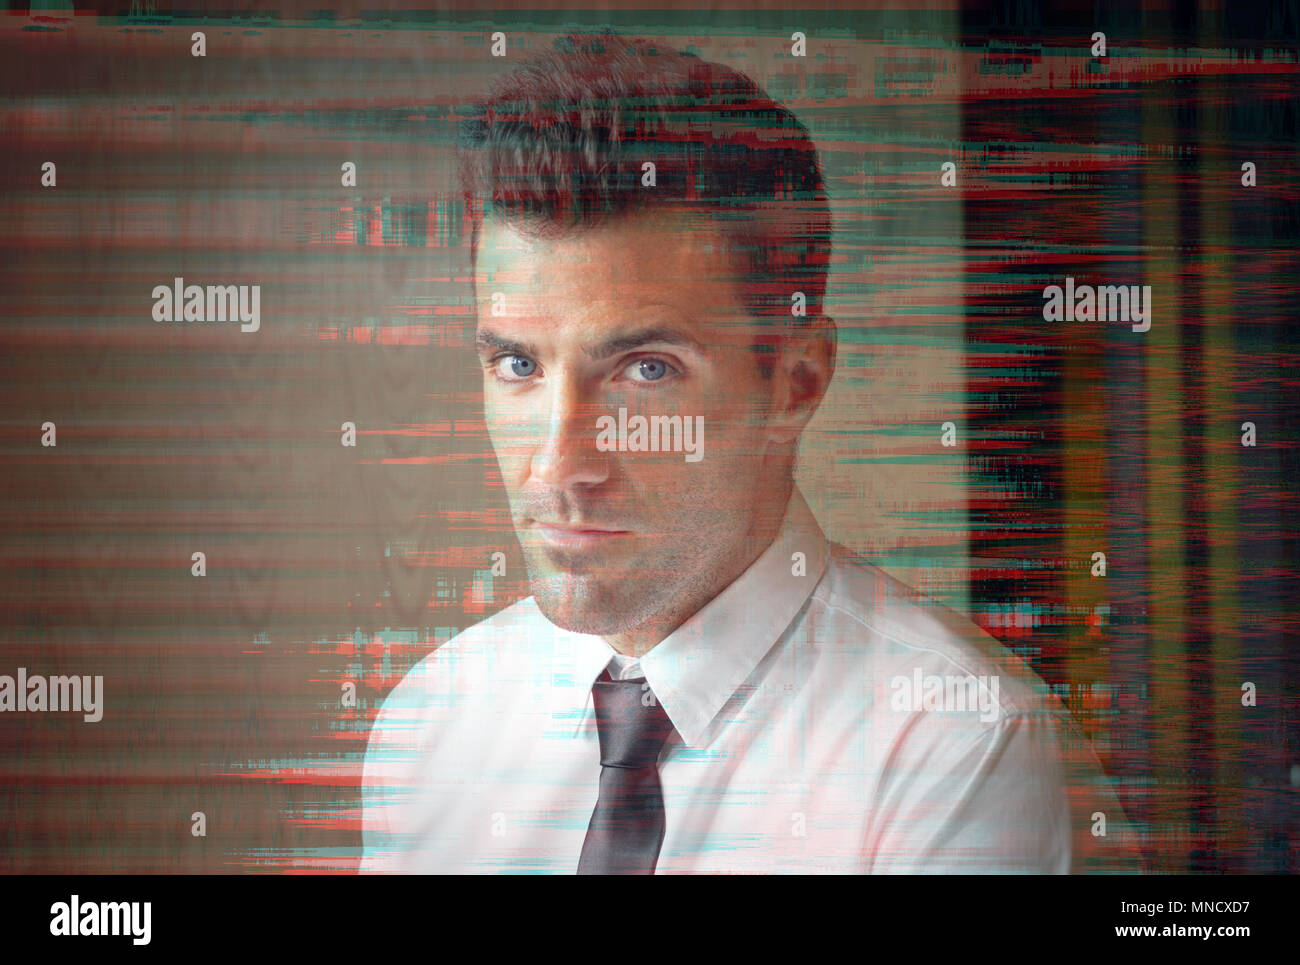 Young confident businessman with beautiful blue eyes staring at